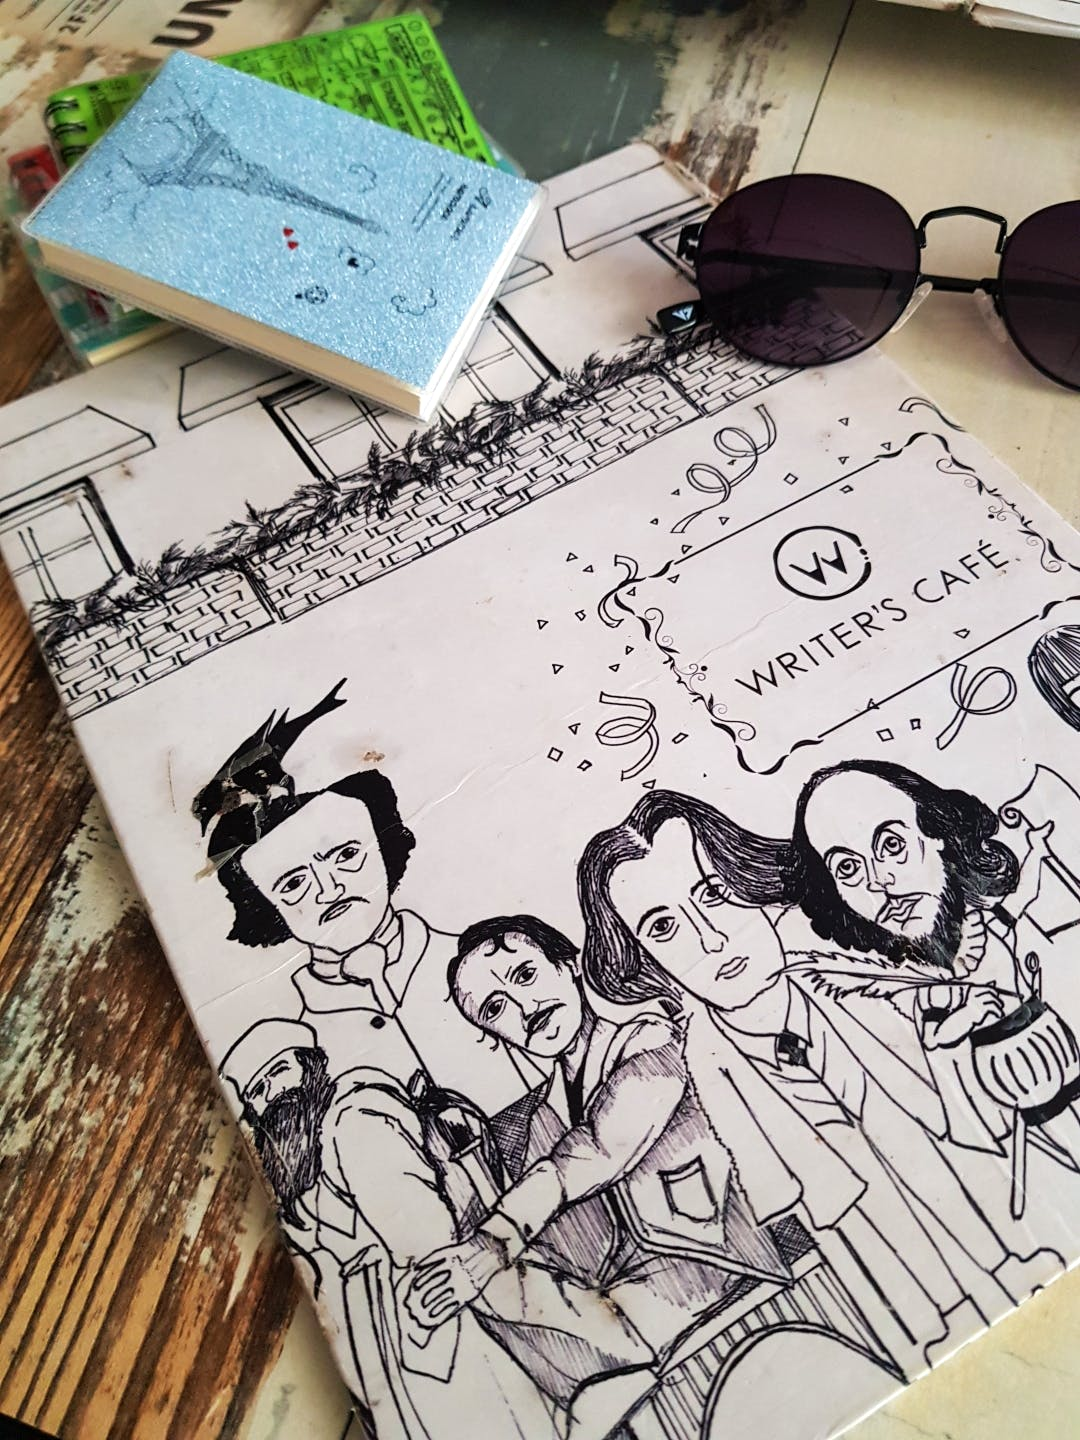 Illustration,Cartoon,Text,Drawing,Glasses,Art,Eyewear,Sketch,Paper,Style